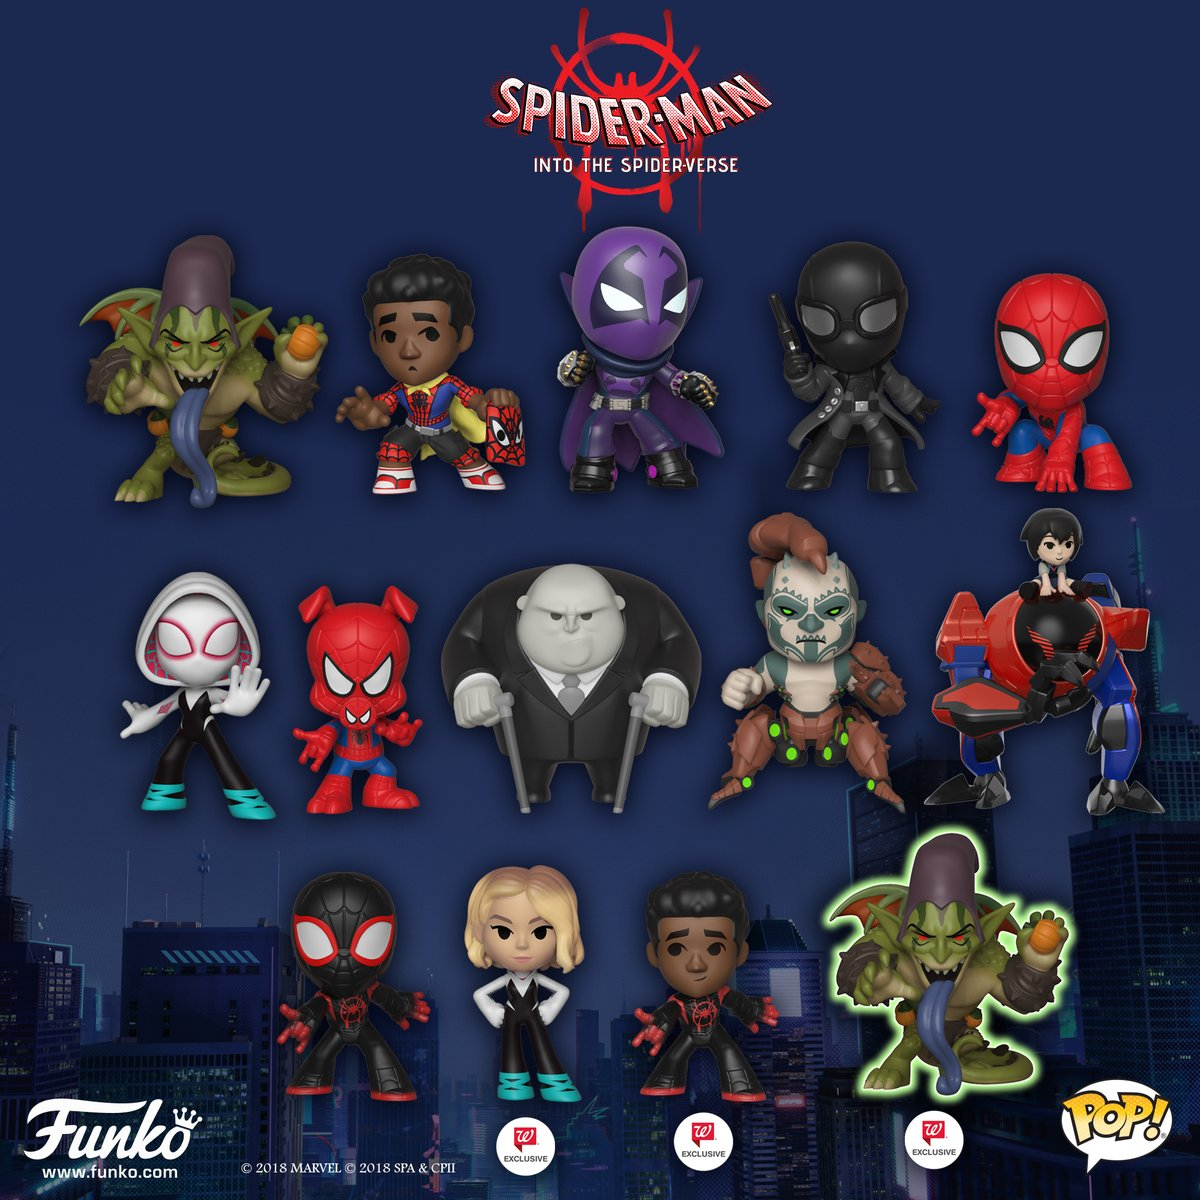 Set of 12 NEW Funko Classic Mystery Minis Blind Box Spider-Man